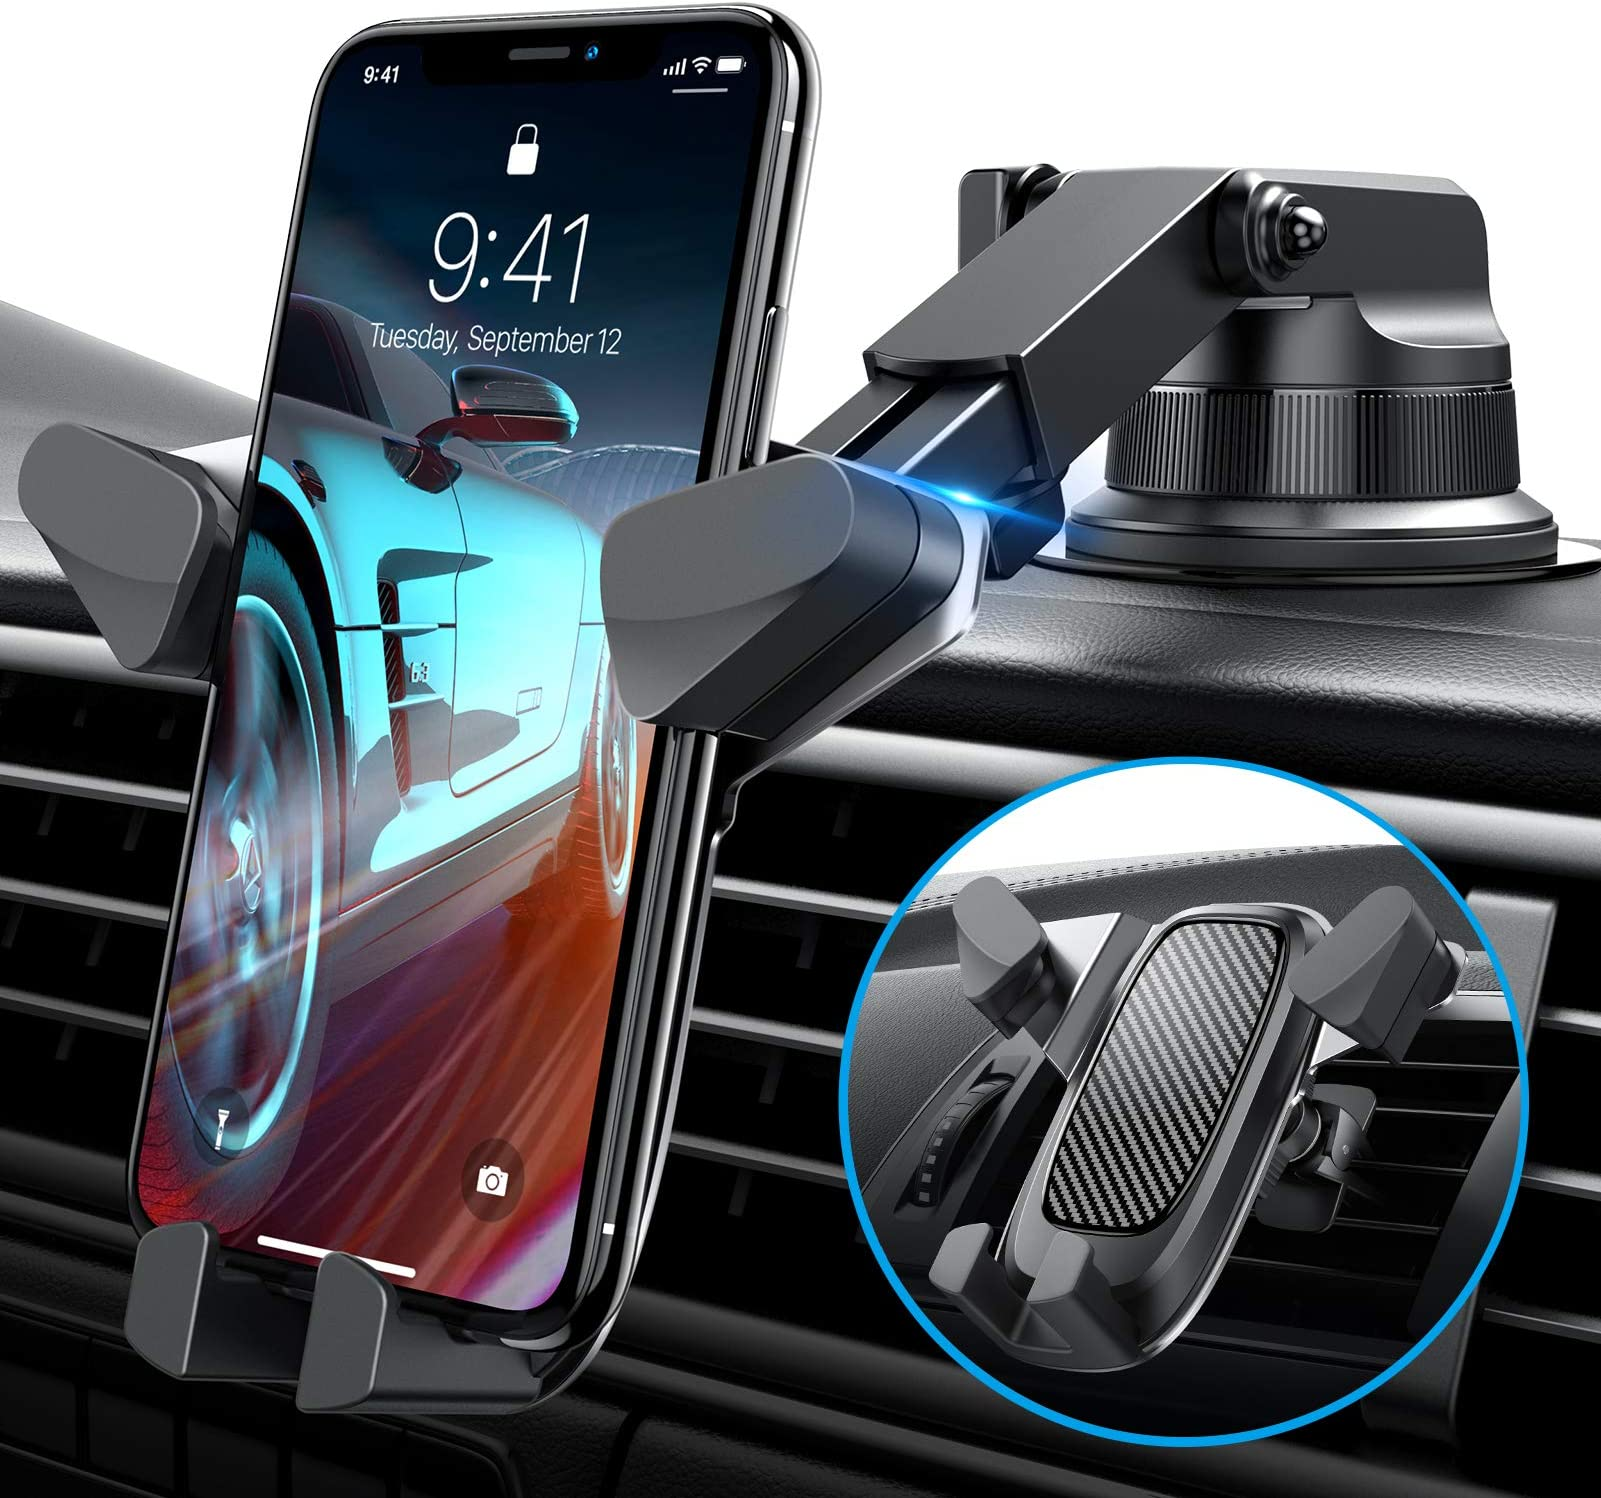 VANMASS Car Phone Holder with Auto Clamp, Easy to Use, Car Phone Mount with Strong Sticky Gel Suction Cup, Anti-Fall, Car Phone Holder for Dash Windshield Air Vent, Suitable for Most Mobile Phones